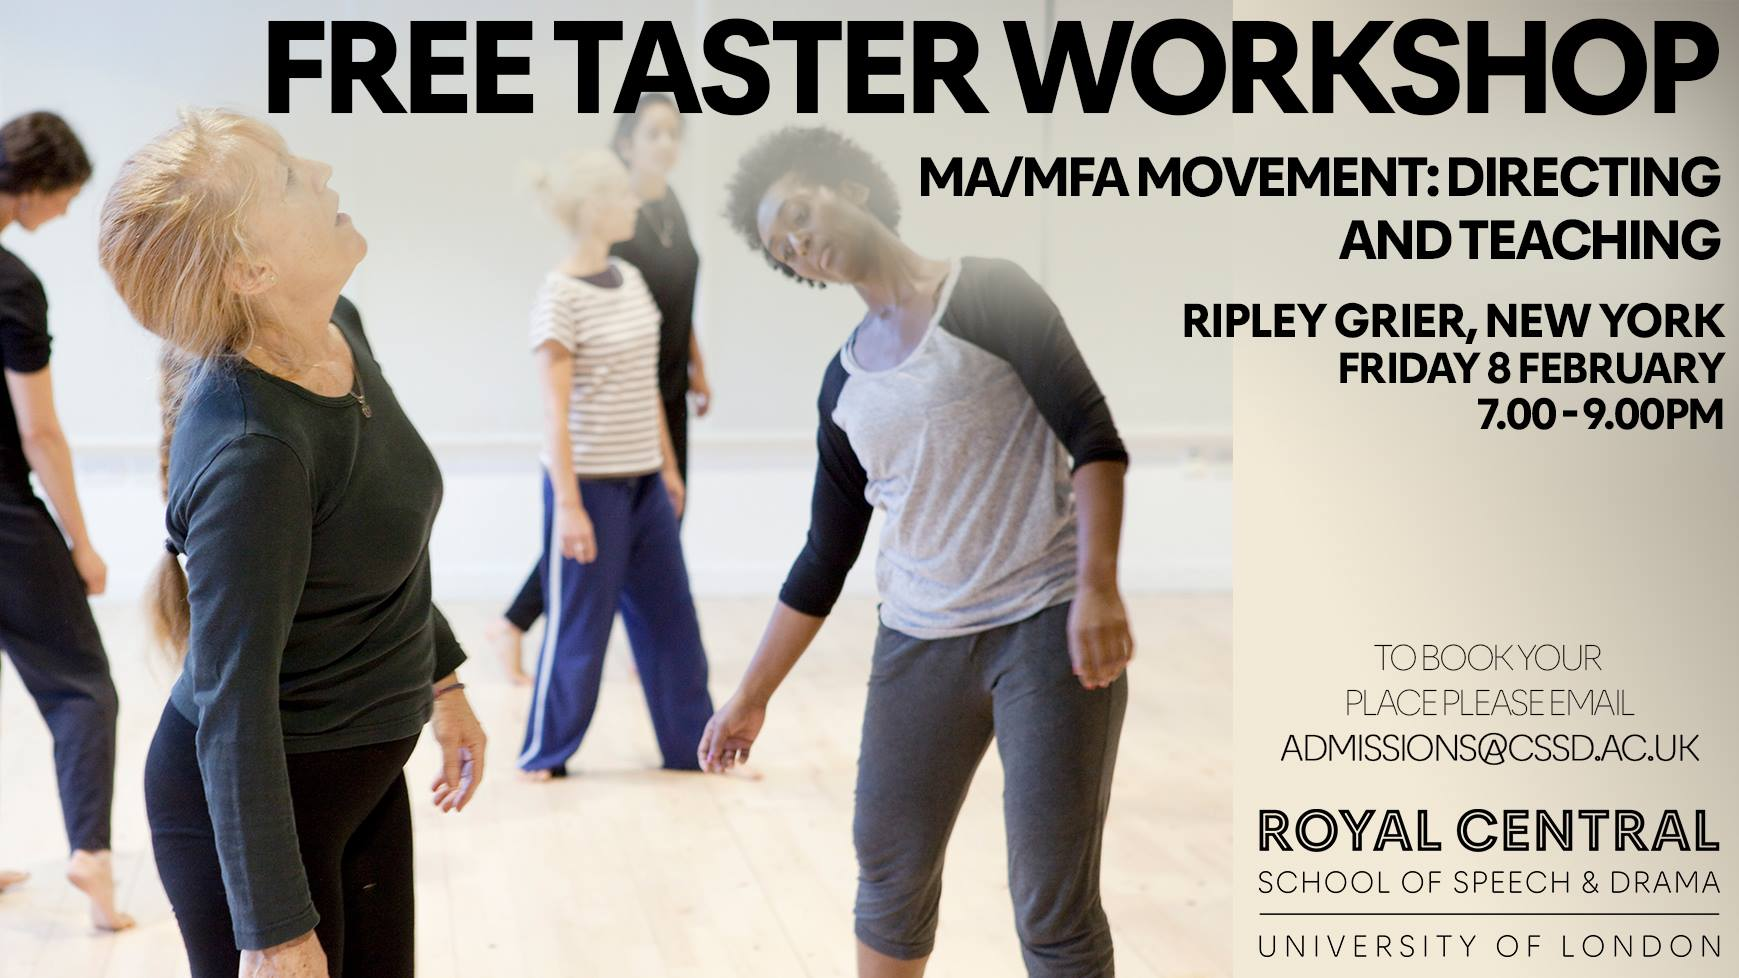 Free Taster Workshop MA/MFA Movement Direction and Teaching with Vanessa Ewan, NEW YORK, US